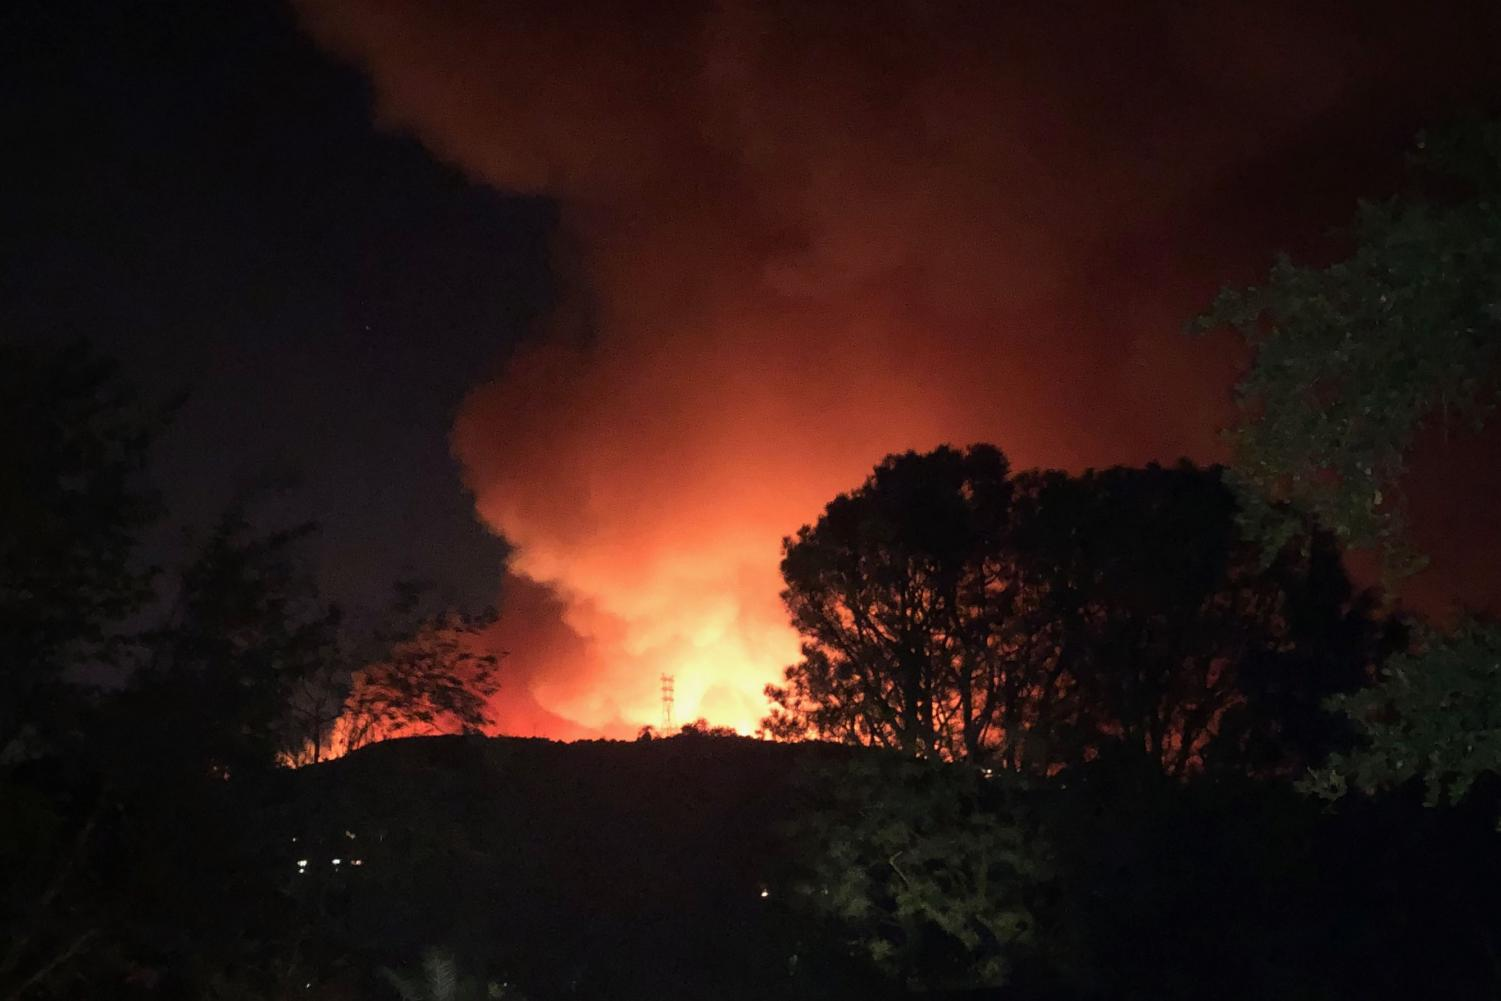 The Getty fire burns over a hill. Some families of Archer students were evacuated or faced power outages in addition to school cancellation.